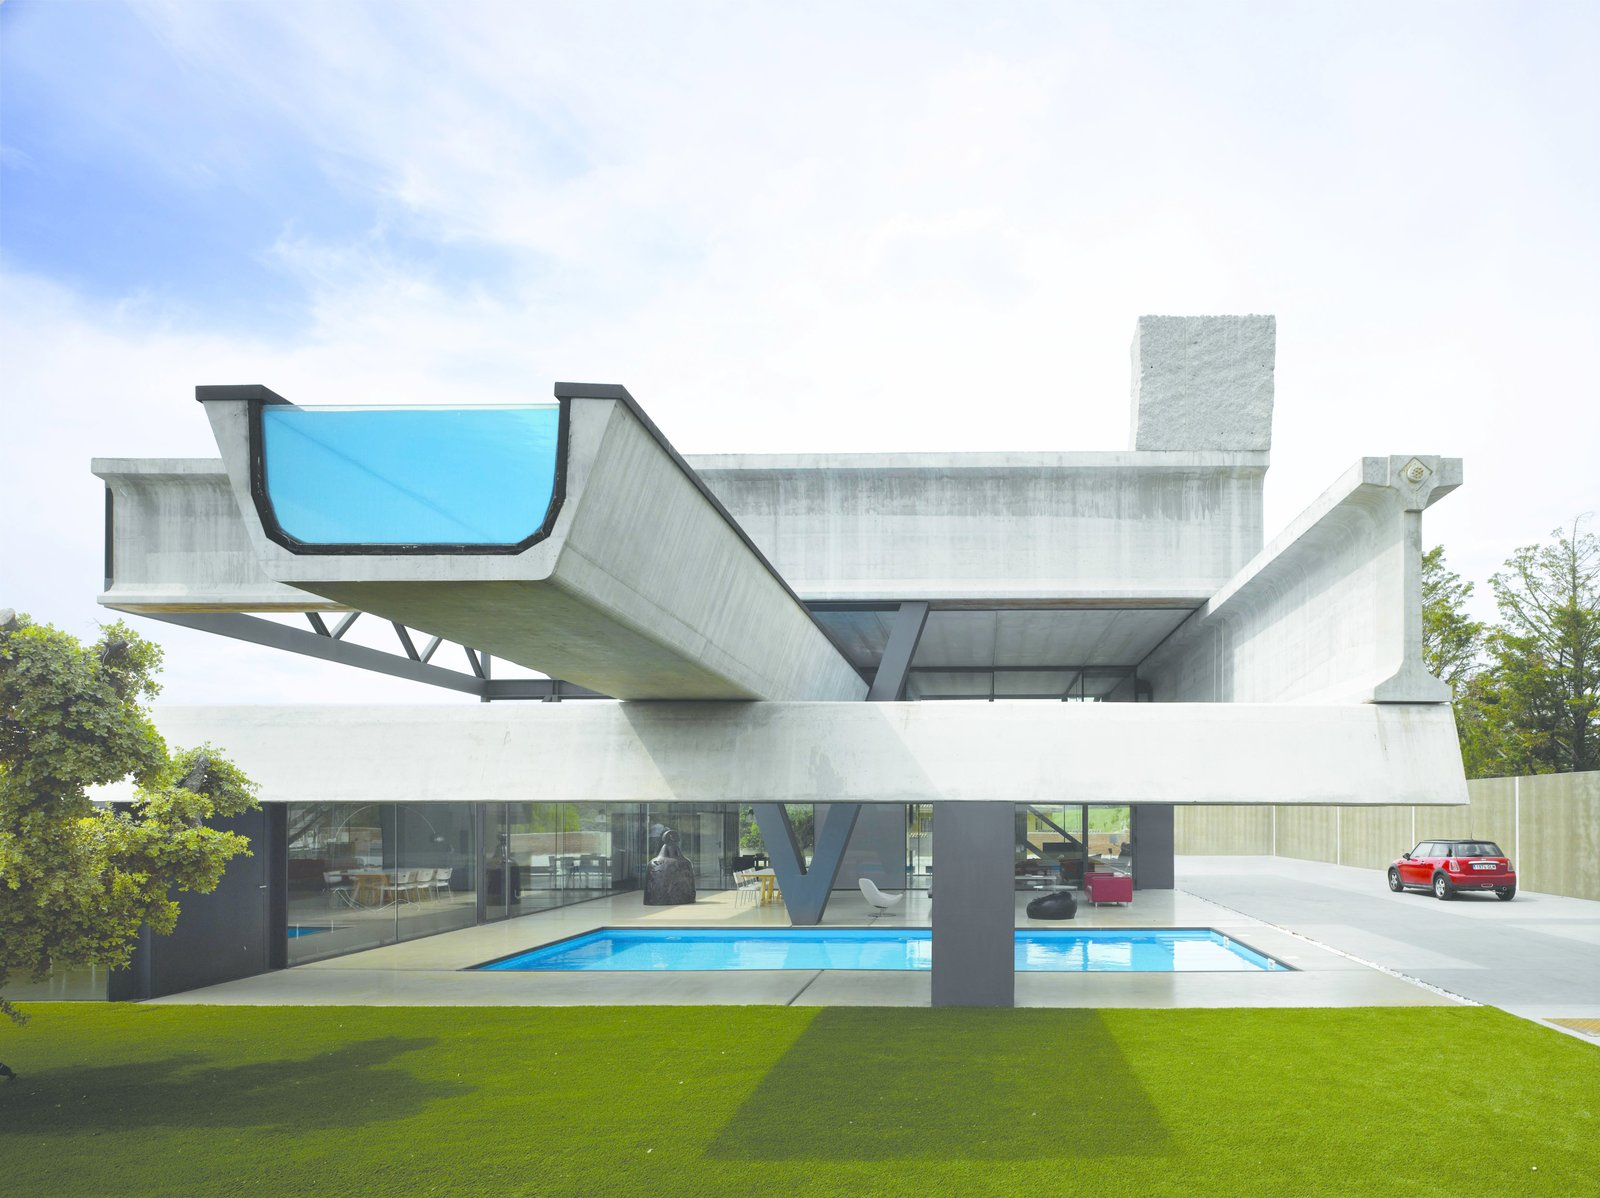 Photo 11 of 11 in 10 works of architecture that reveal the for Repurposed swimming pool